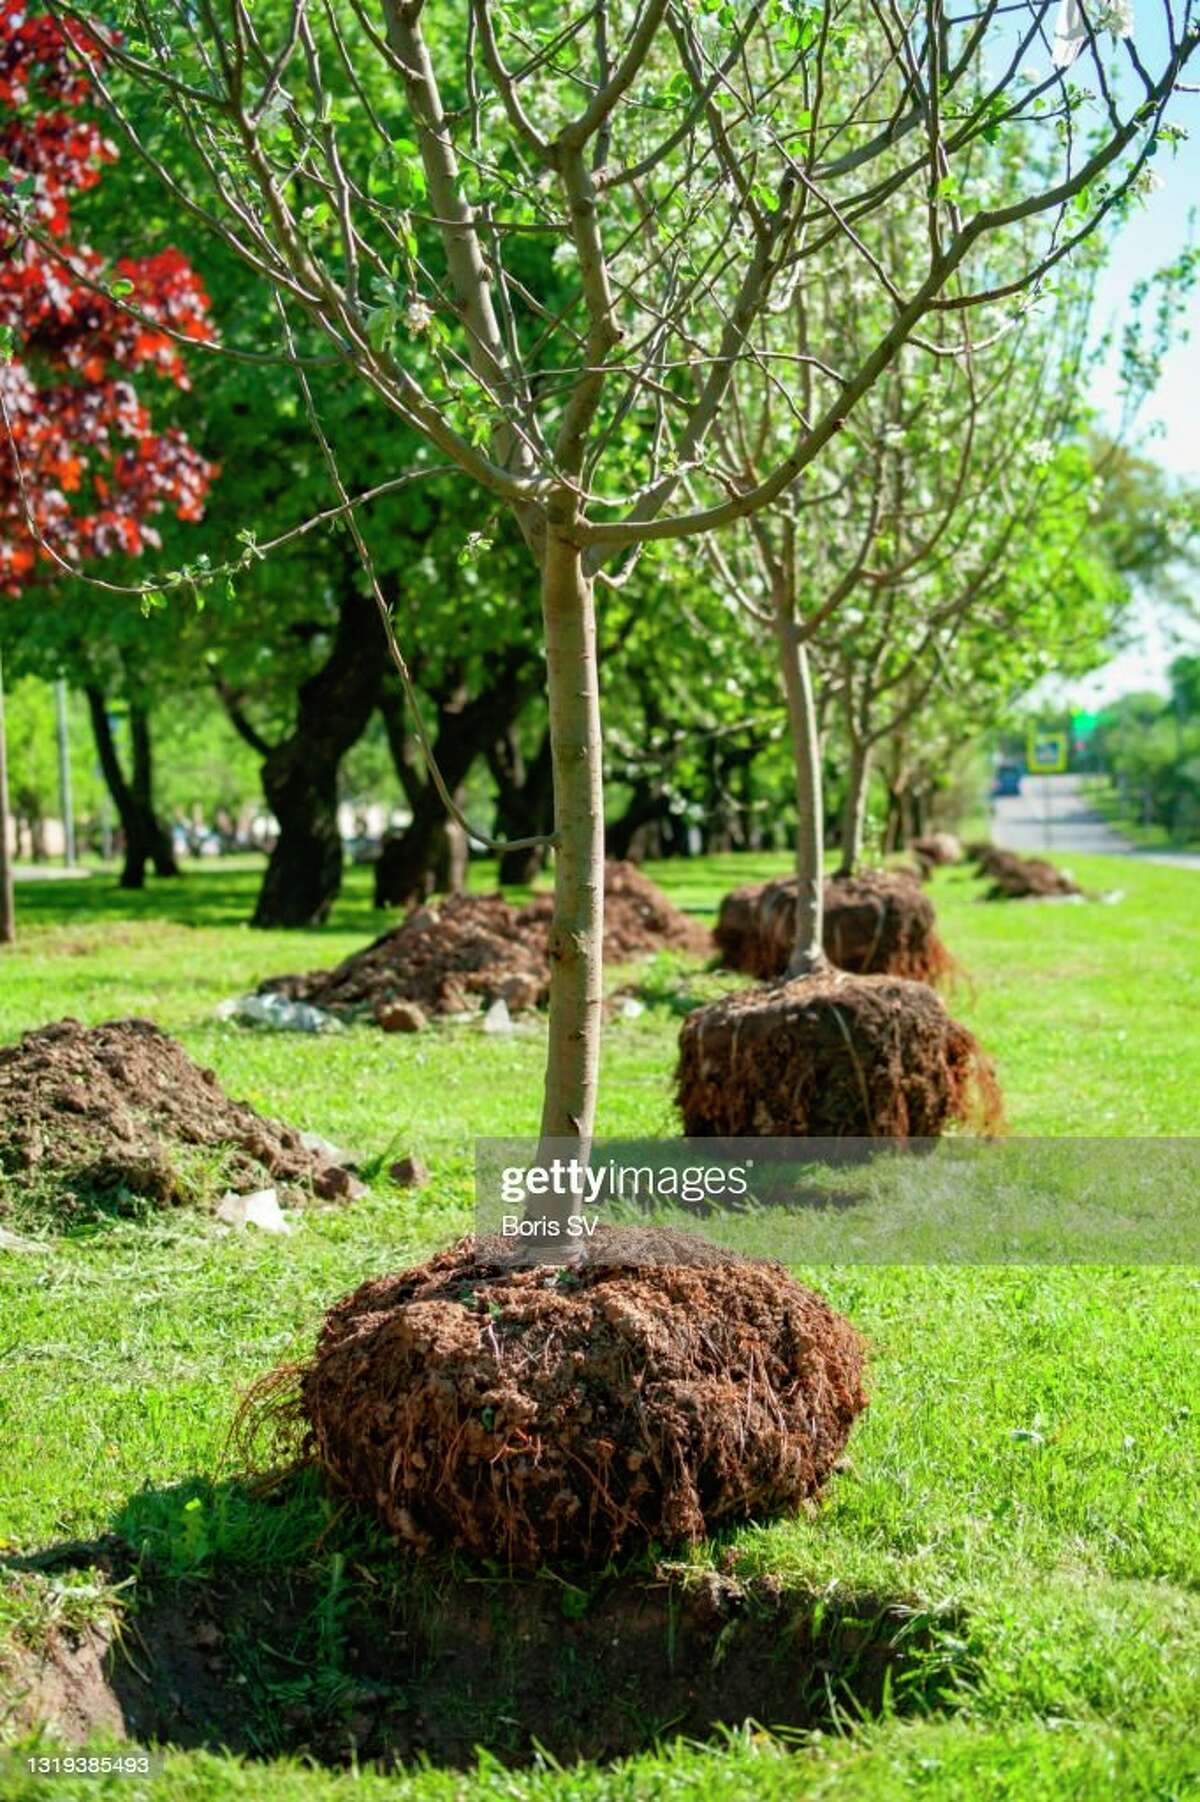 Big Rapids department of public works will be replacing lost trees throughout the city with the help of a grant from Consumers Energy. (Photo courtesy of Getty Images)